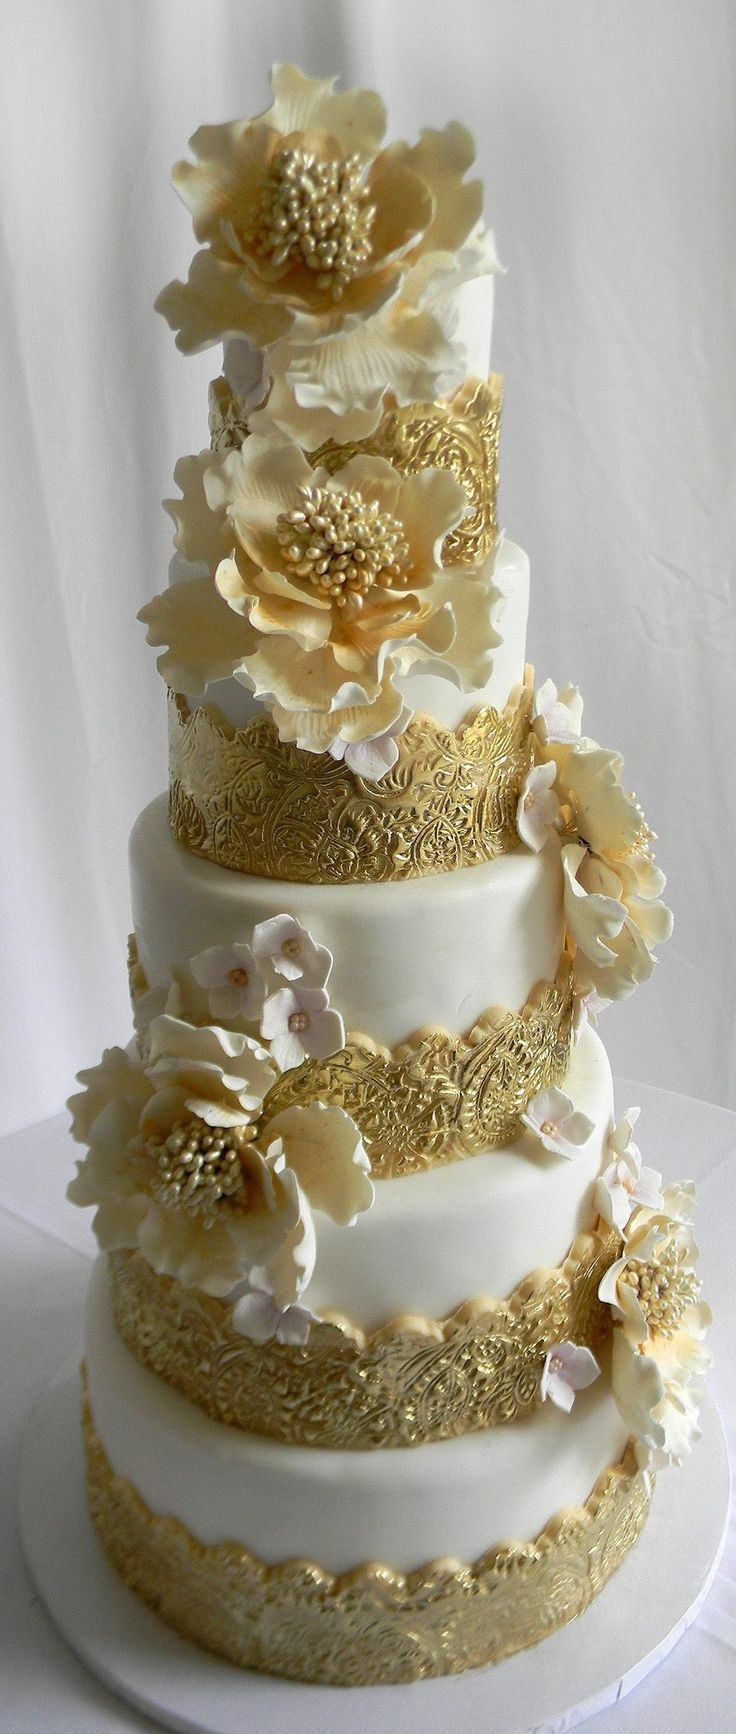 gold and white wedding cake ideas amazing wedding cake http livingglamourmakeup au 14744